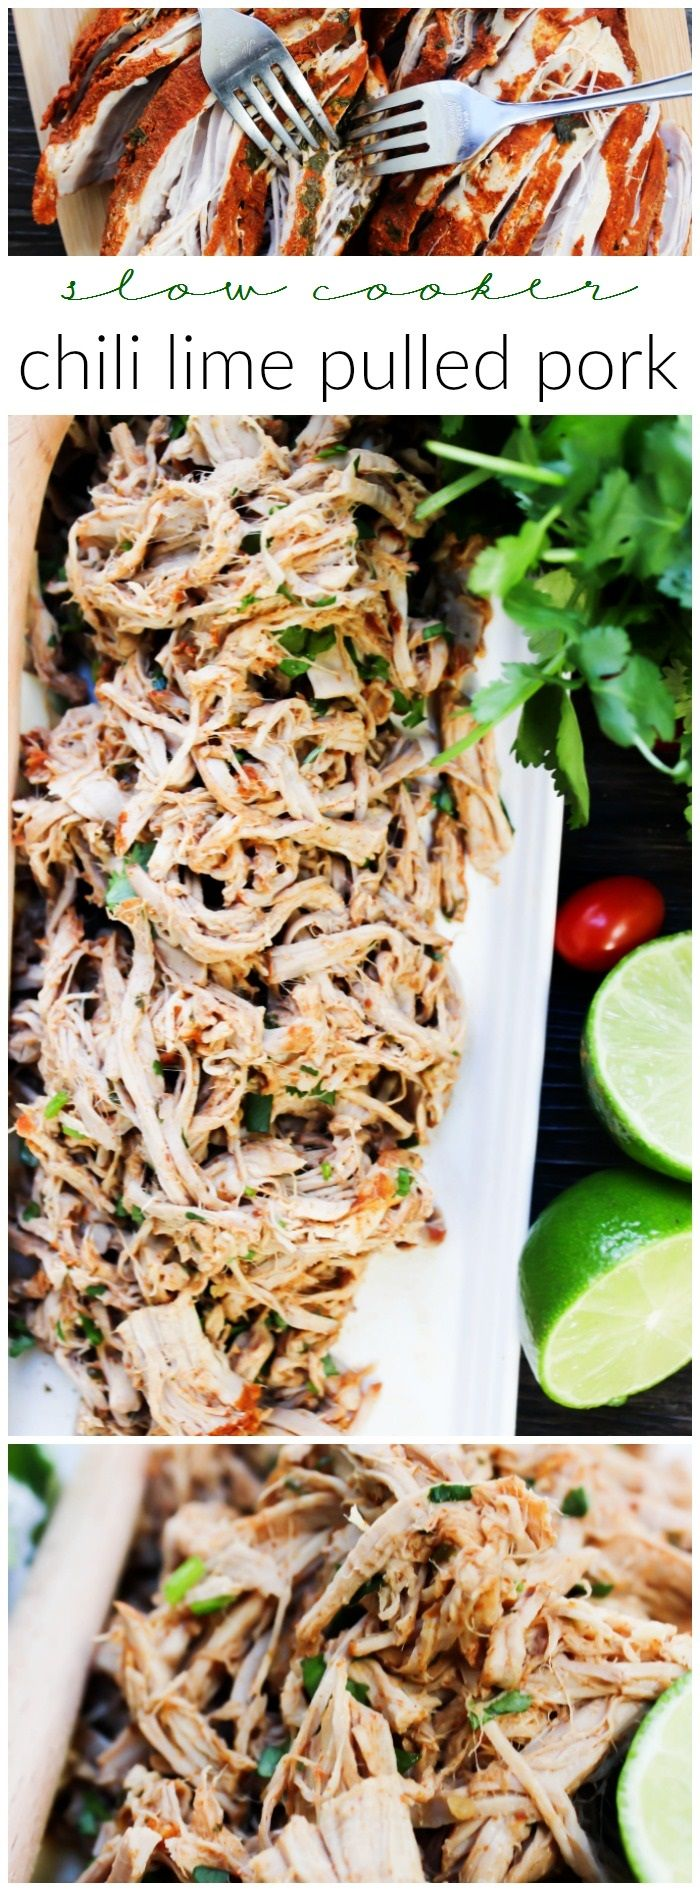 Slow Cooker Chili Lime Pulled Pork made with a chili rub, cooked in lime juice & fresh cilantro. This is the easiest, juiciest pulled pork…